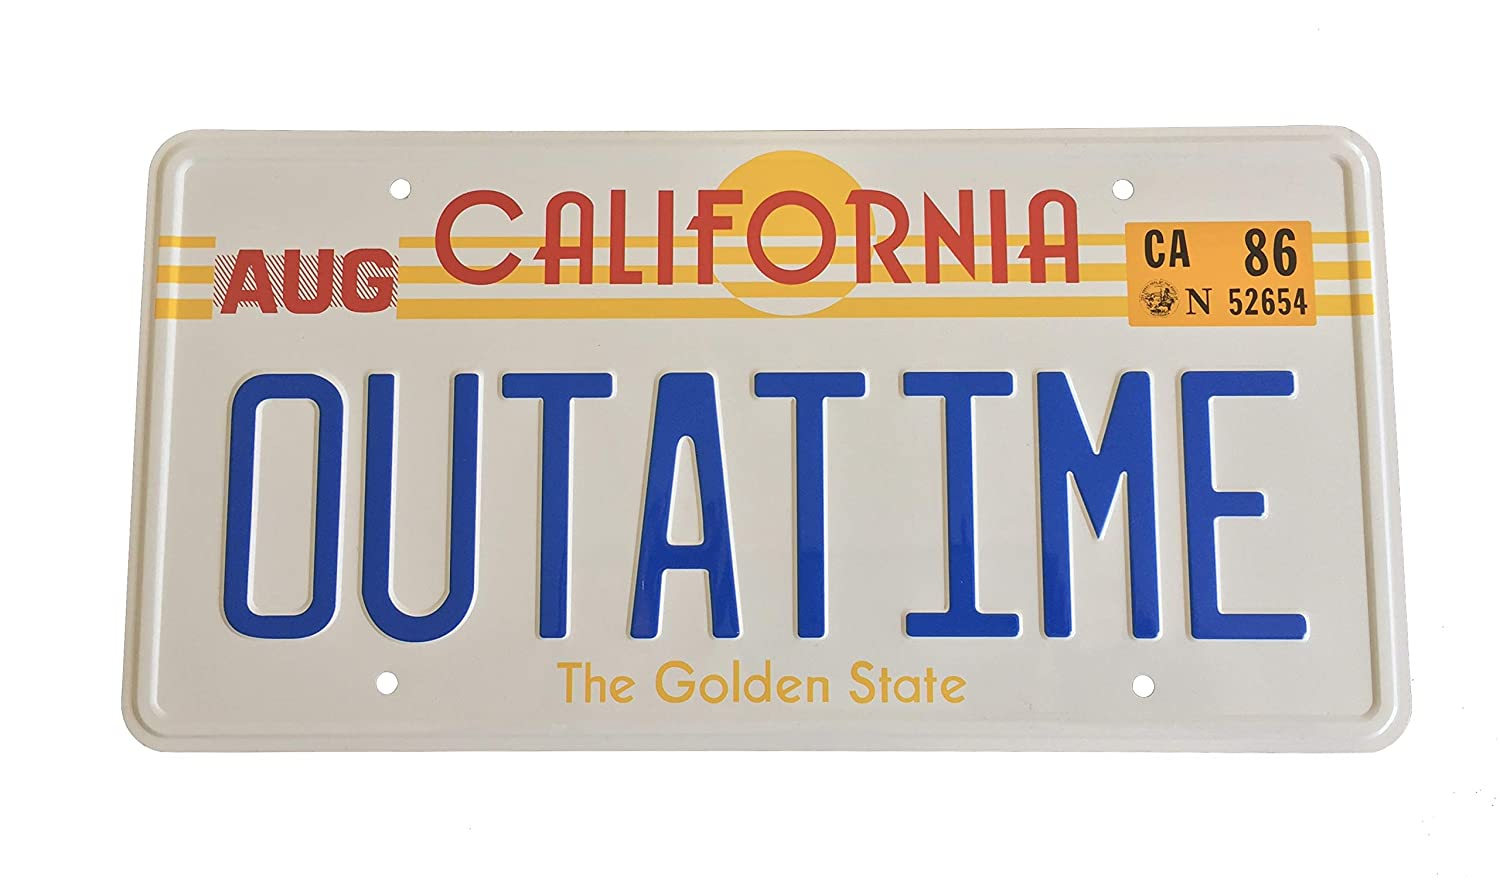 OUTATIME Back To The Future prop License Plate Back to the Future number plate as seen on Marty McFly and Doc Browns DMC-12 Delorean.